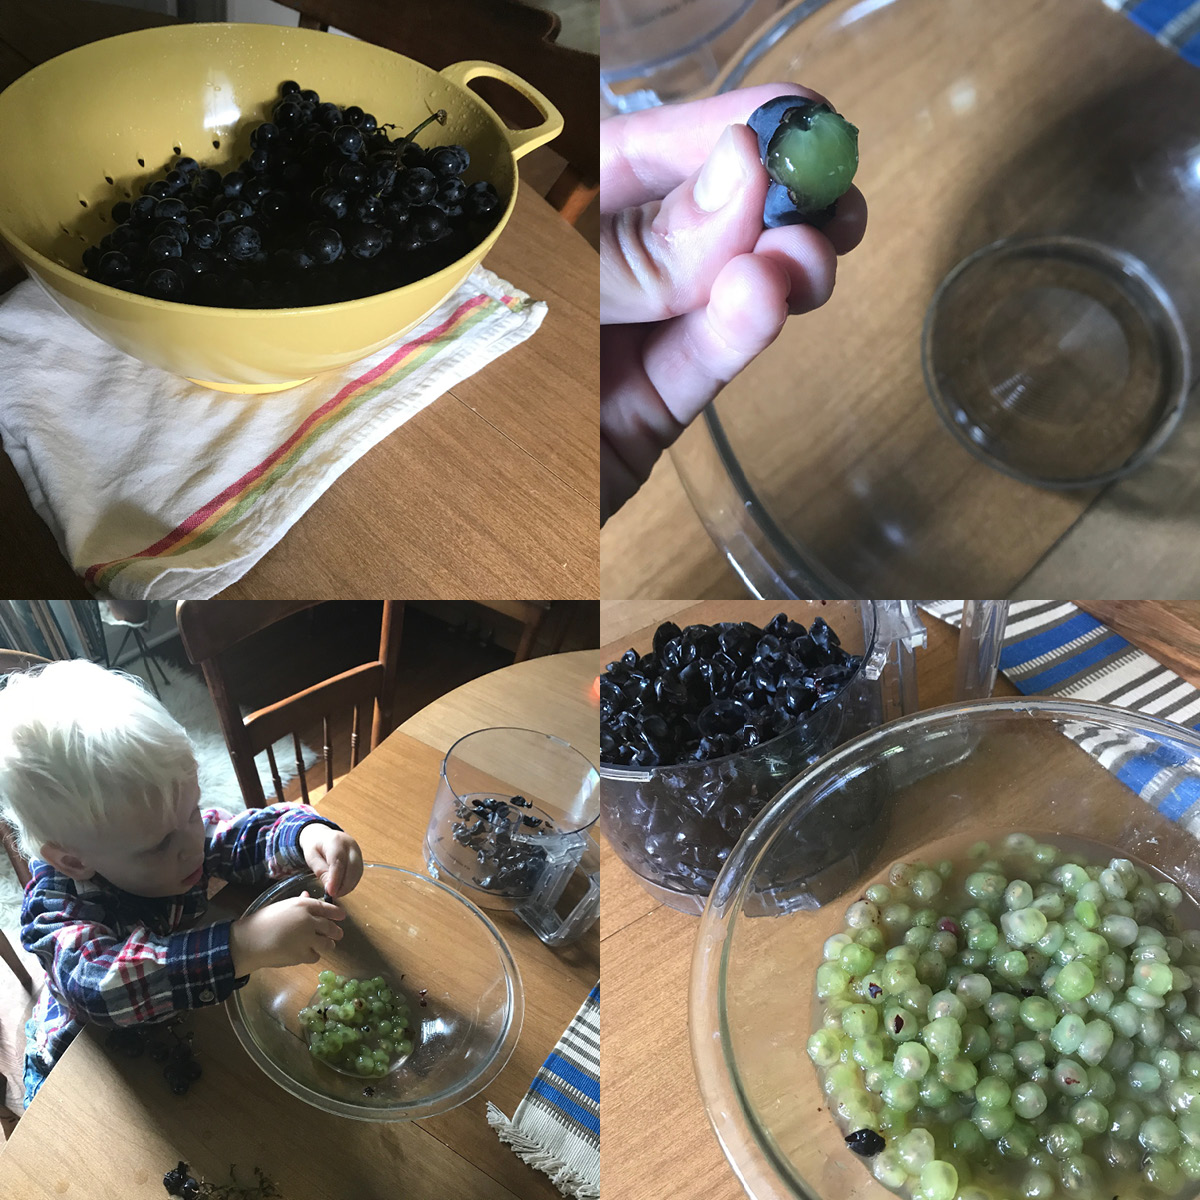 grape skin, processing concord grapes, jam making